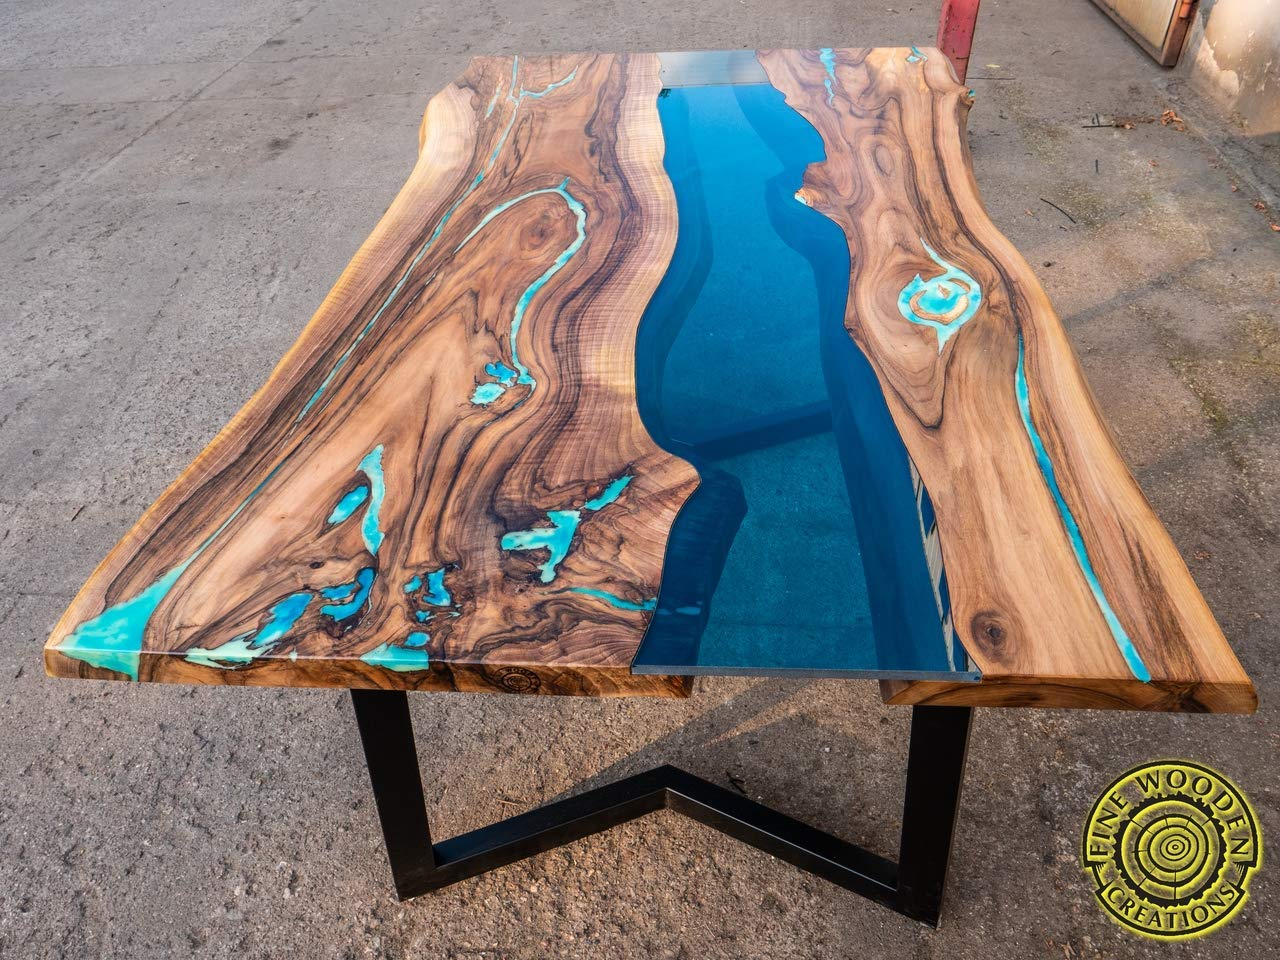 Amazon.com: Live edge river dining table with turquoise glowing ...